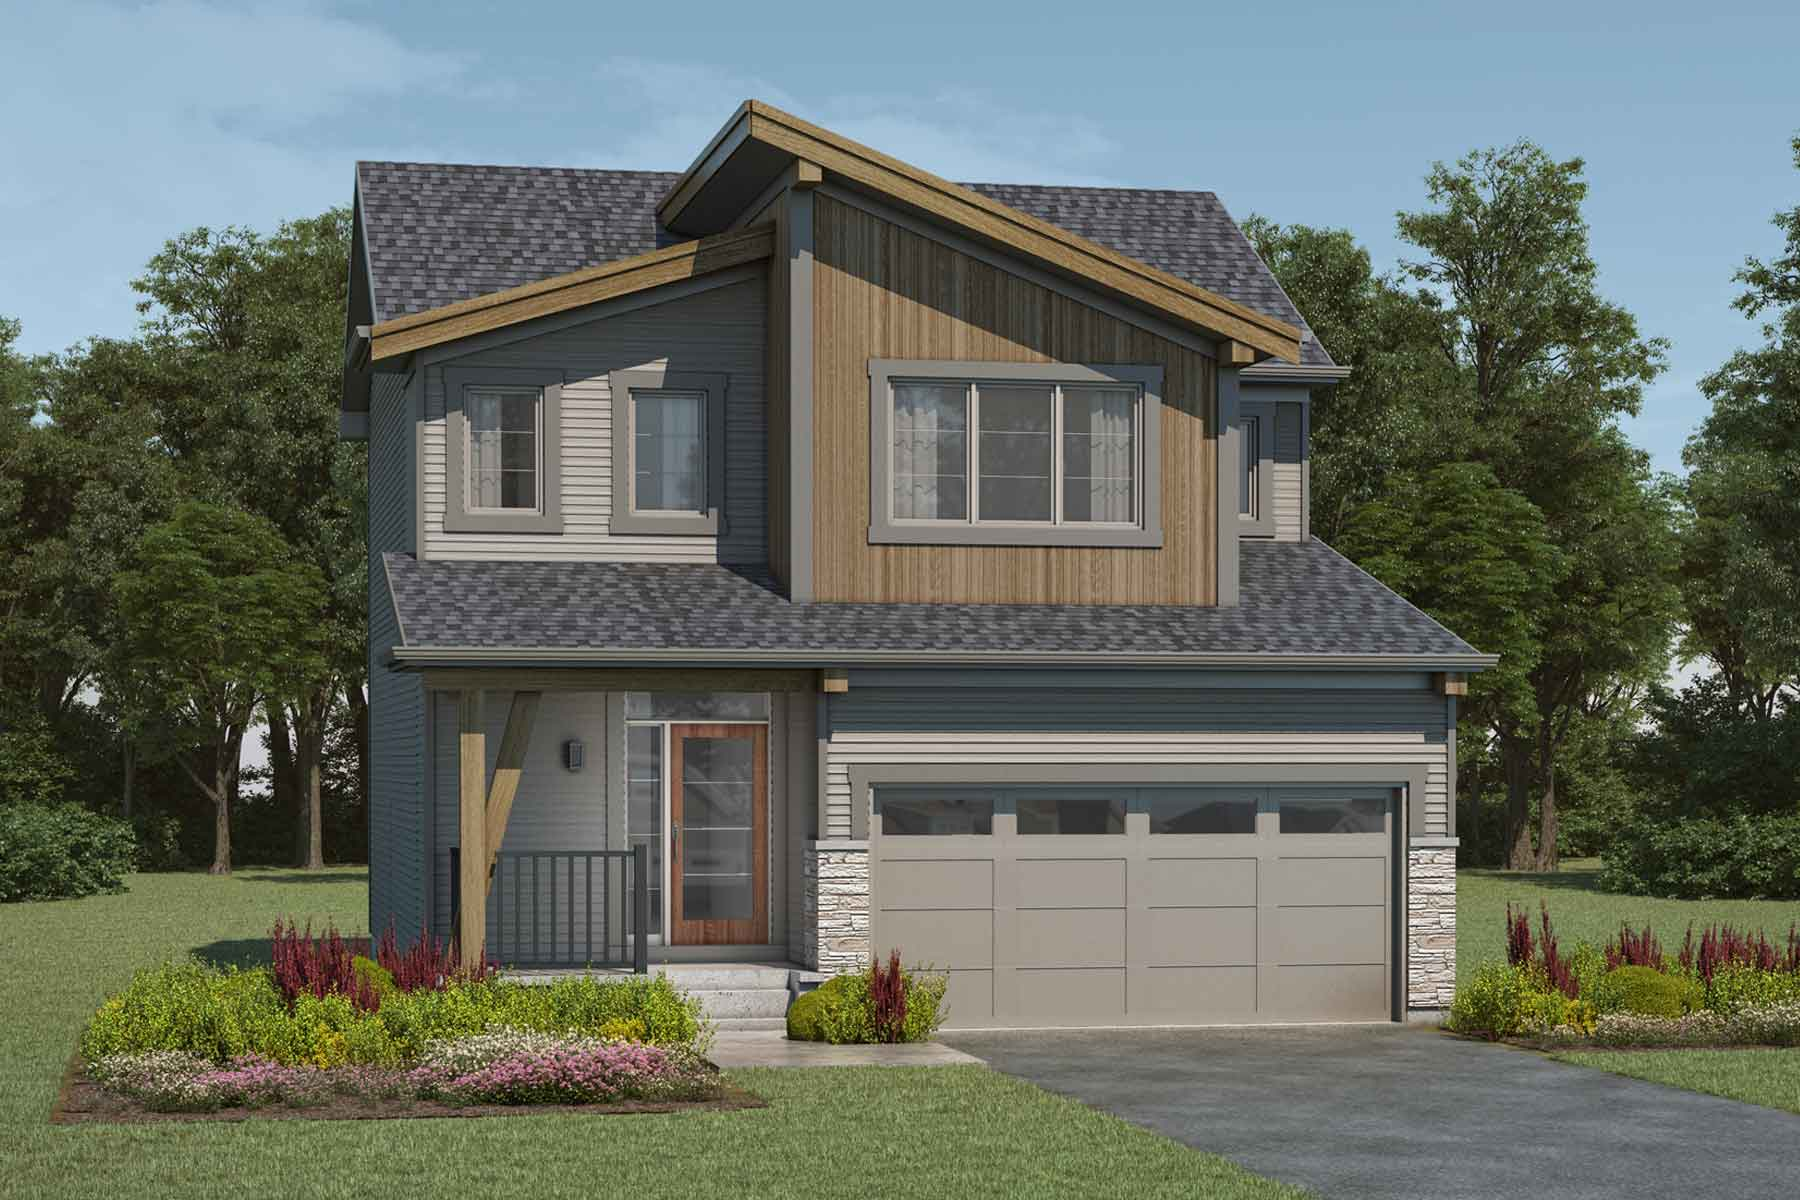 Cypress Plan mountaincontemporary_carrington_cypress at Carrington in Calgary Alberta by Mattamy Homes